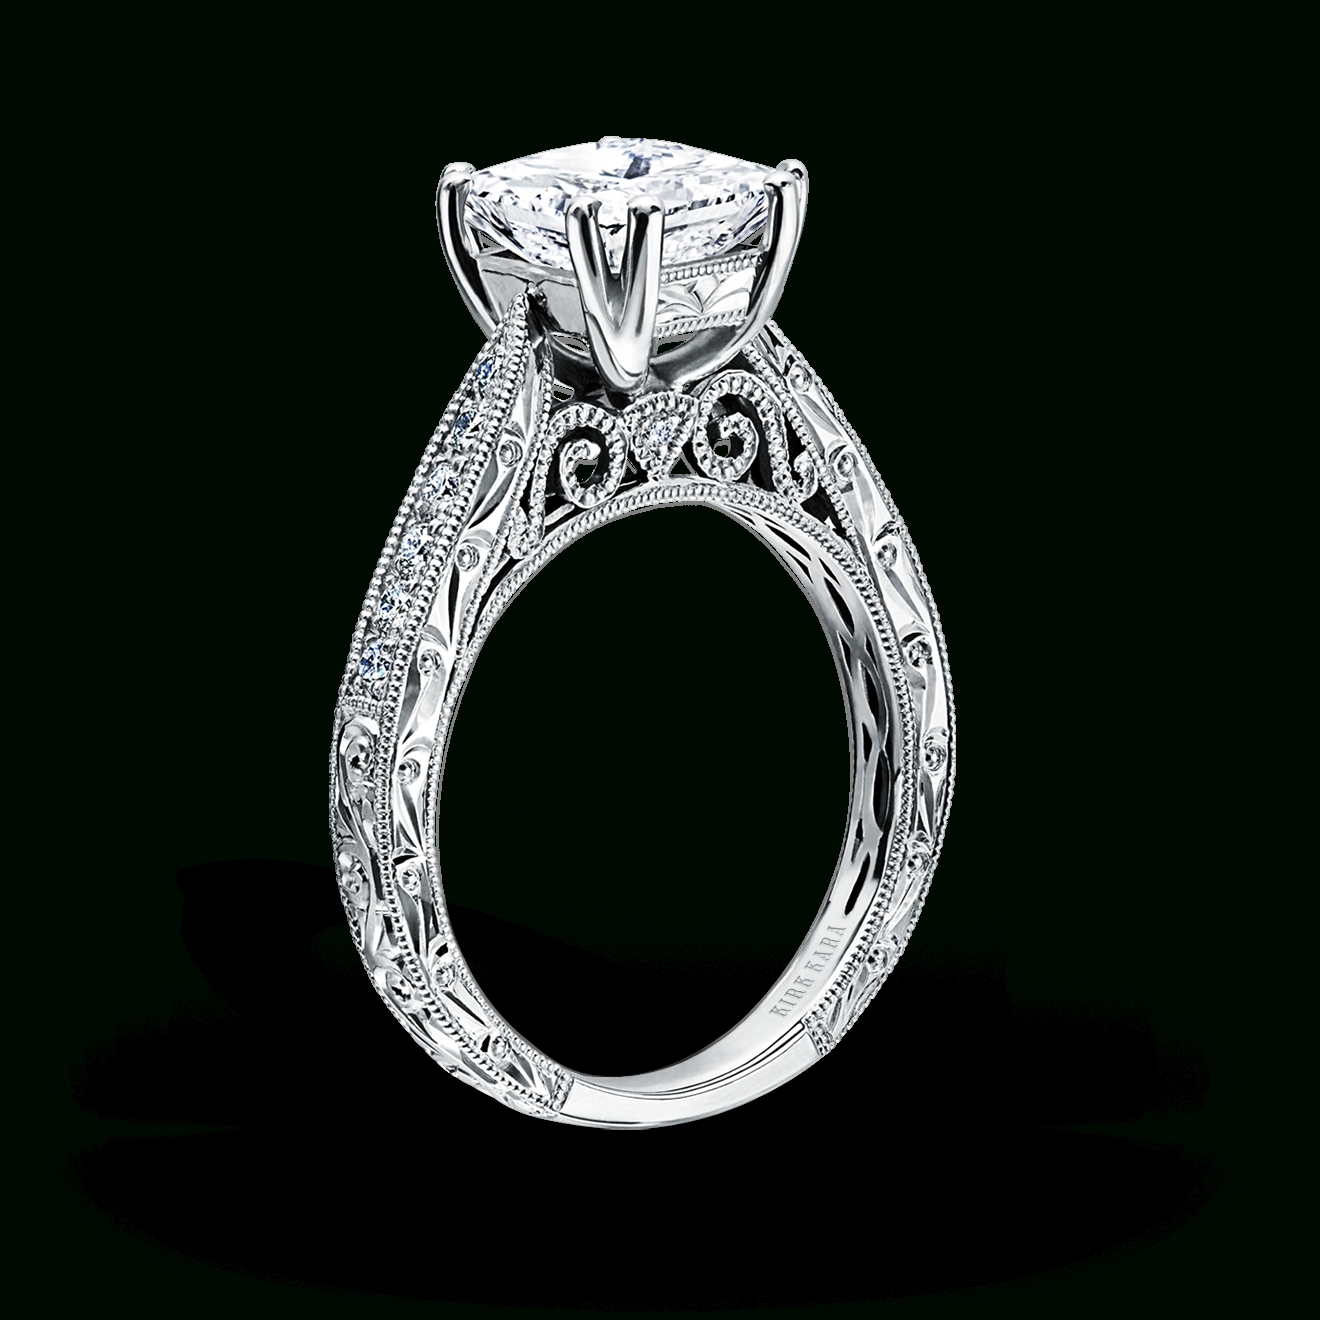 Engagement Rings : Diamond Wedding Ring Stunning Engagement Ring With Special Design Wedding Rings (View 7 of 15)